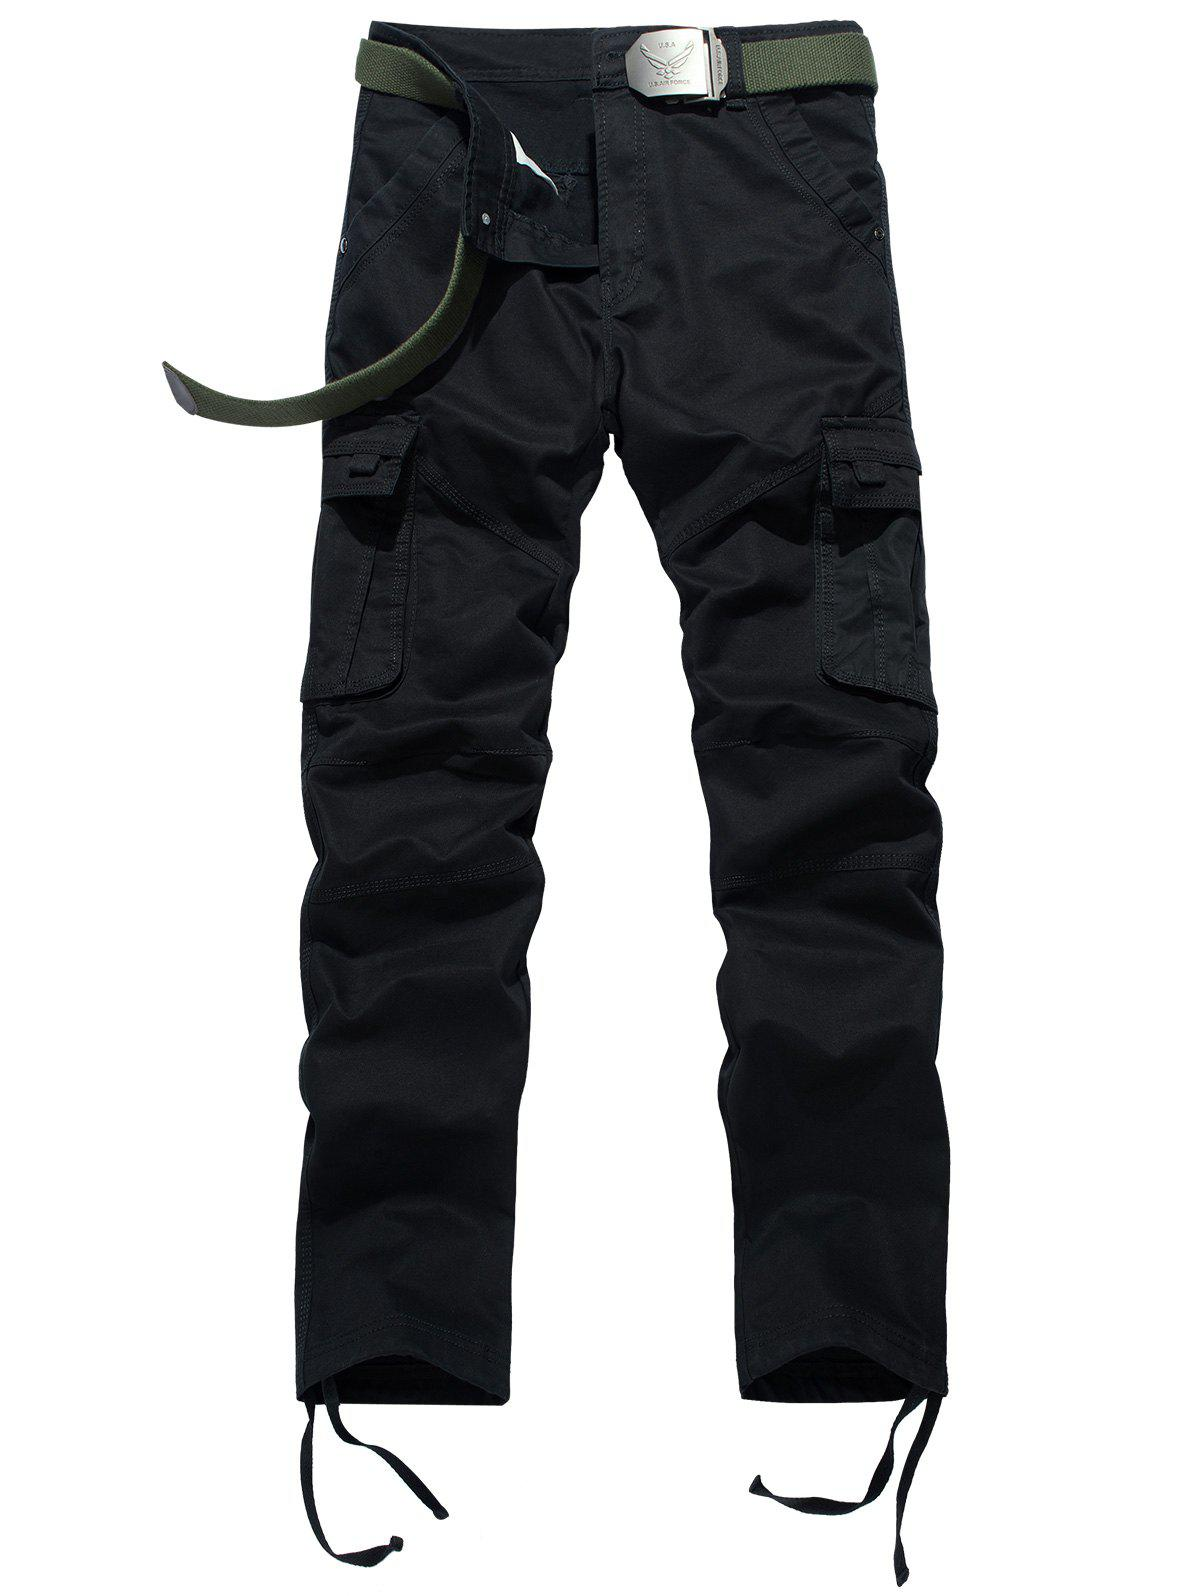 Drawstring Feet Pockets Cargo Pants - BLACK 38